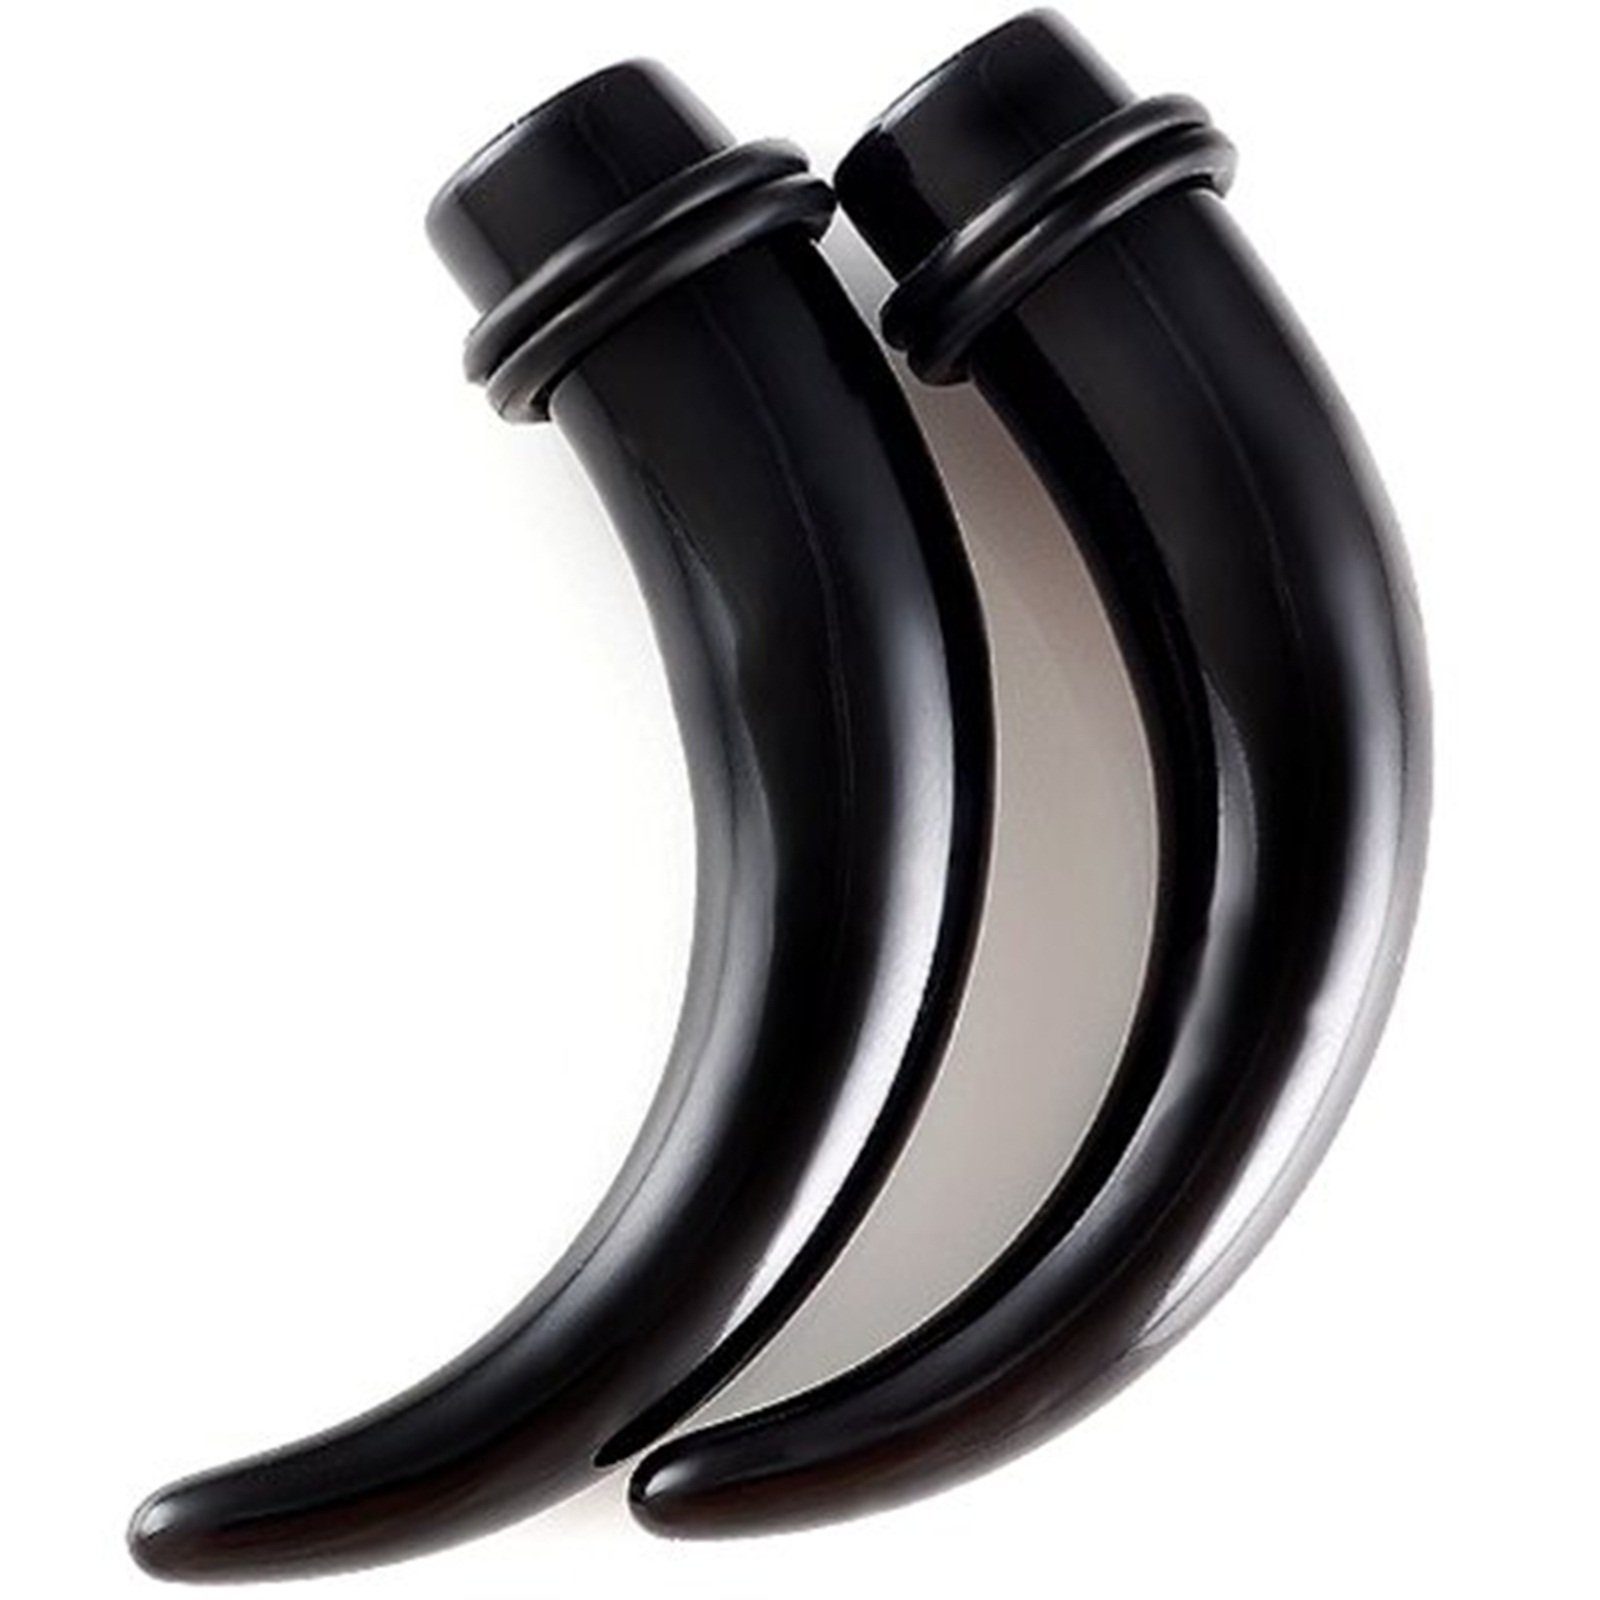 gauges 00 tapers cute ear cool 10mm Black Acrylic s Stretching Talon Claw Plugs ADEE Piercing 2Pcs